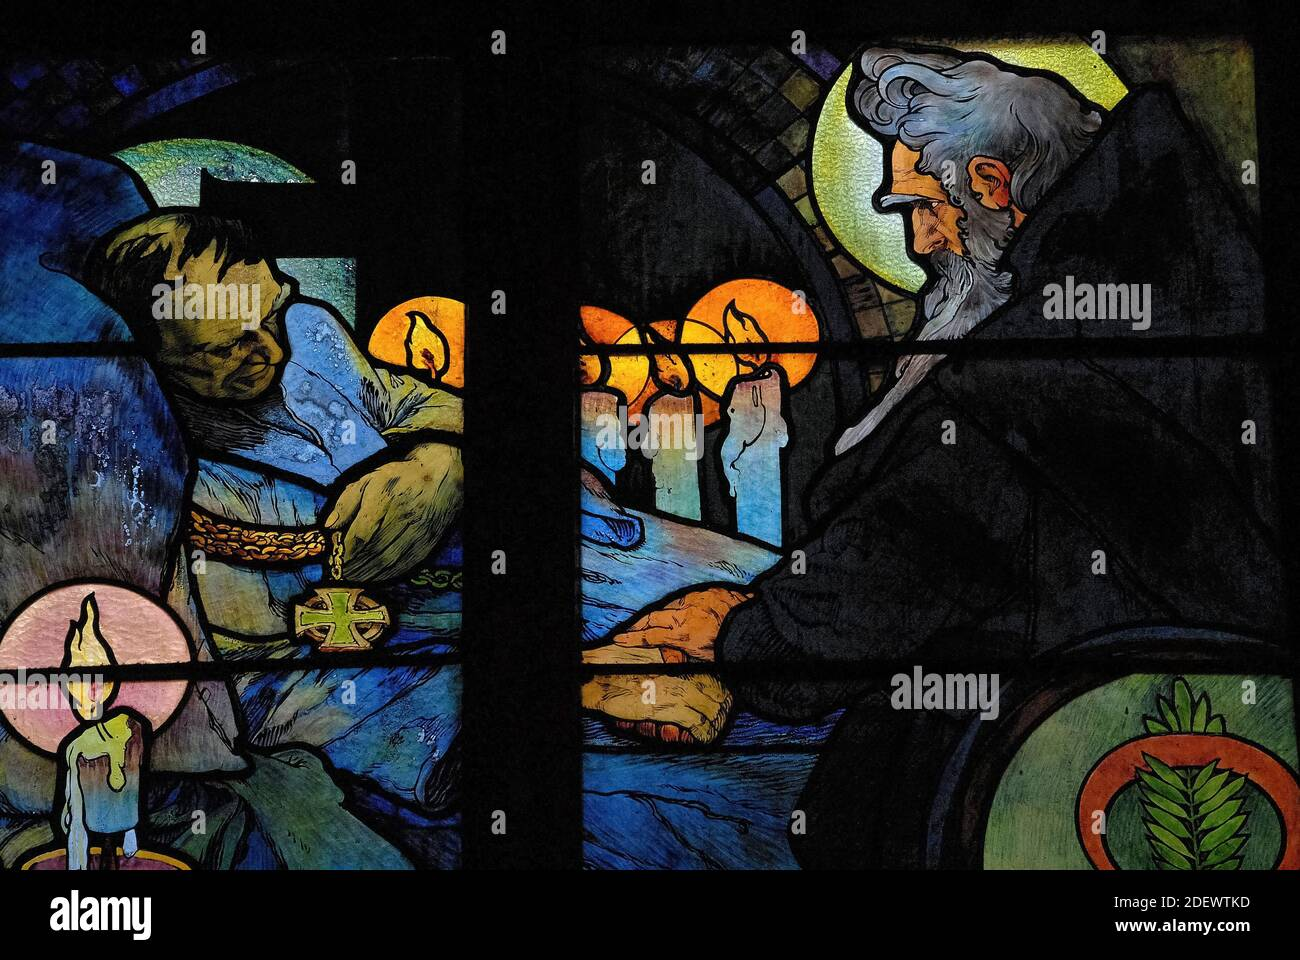 Candlelit vigil by deathbed of Byzantine theologian and missionary Saint Cyril, as depicted by influential Art Nouveau artist Alphonse Mucha in his vivid 1930 stained glass for the New Archbishop's Chapel in the Cathedral of St Vitus in Prague, capital of the Czech Republic / Czechia.  The artwork, an allegory of Christ blessing the Slavic nations, features scenes from the lives of 'Apostles to the Slavs' Cyril and his brother Methodius, as well as Czech patron saint Wenceslas, Duke of Bohemia, and his grandmother, St Ludmila. Stock Photo